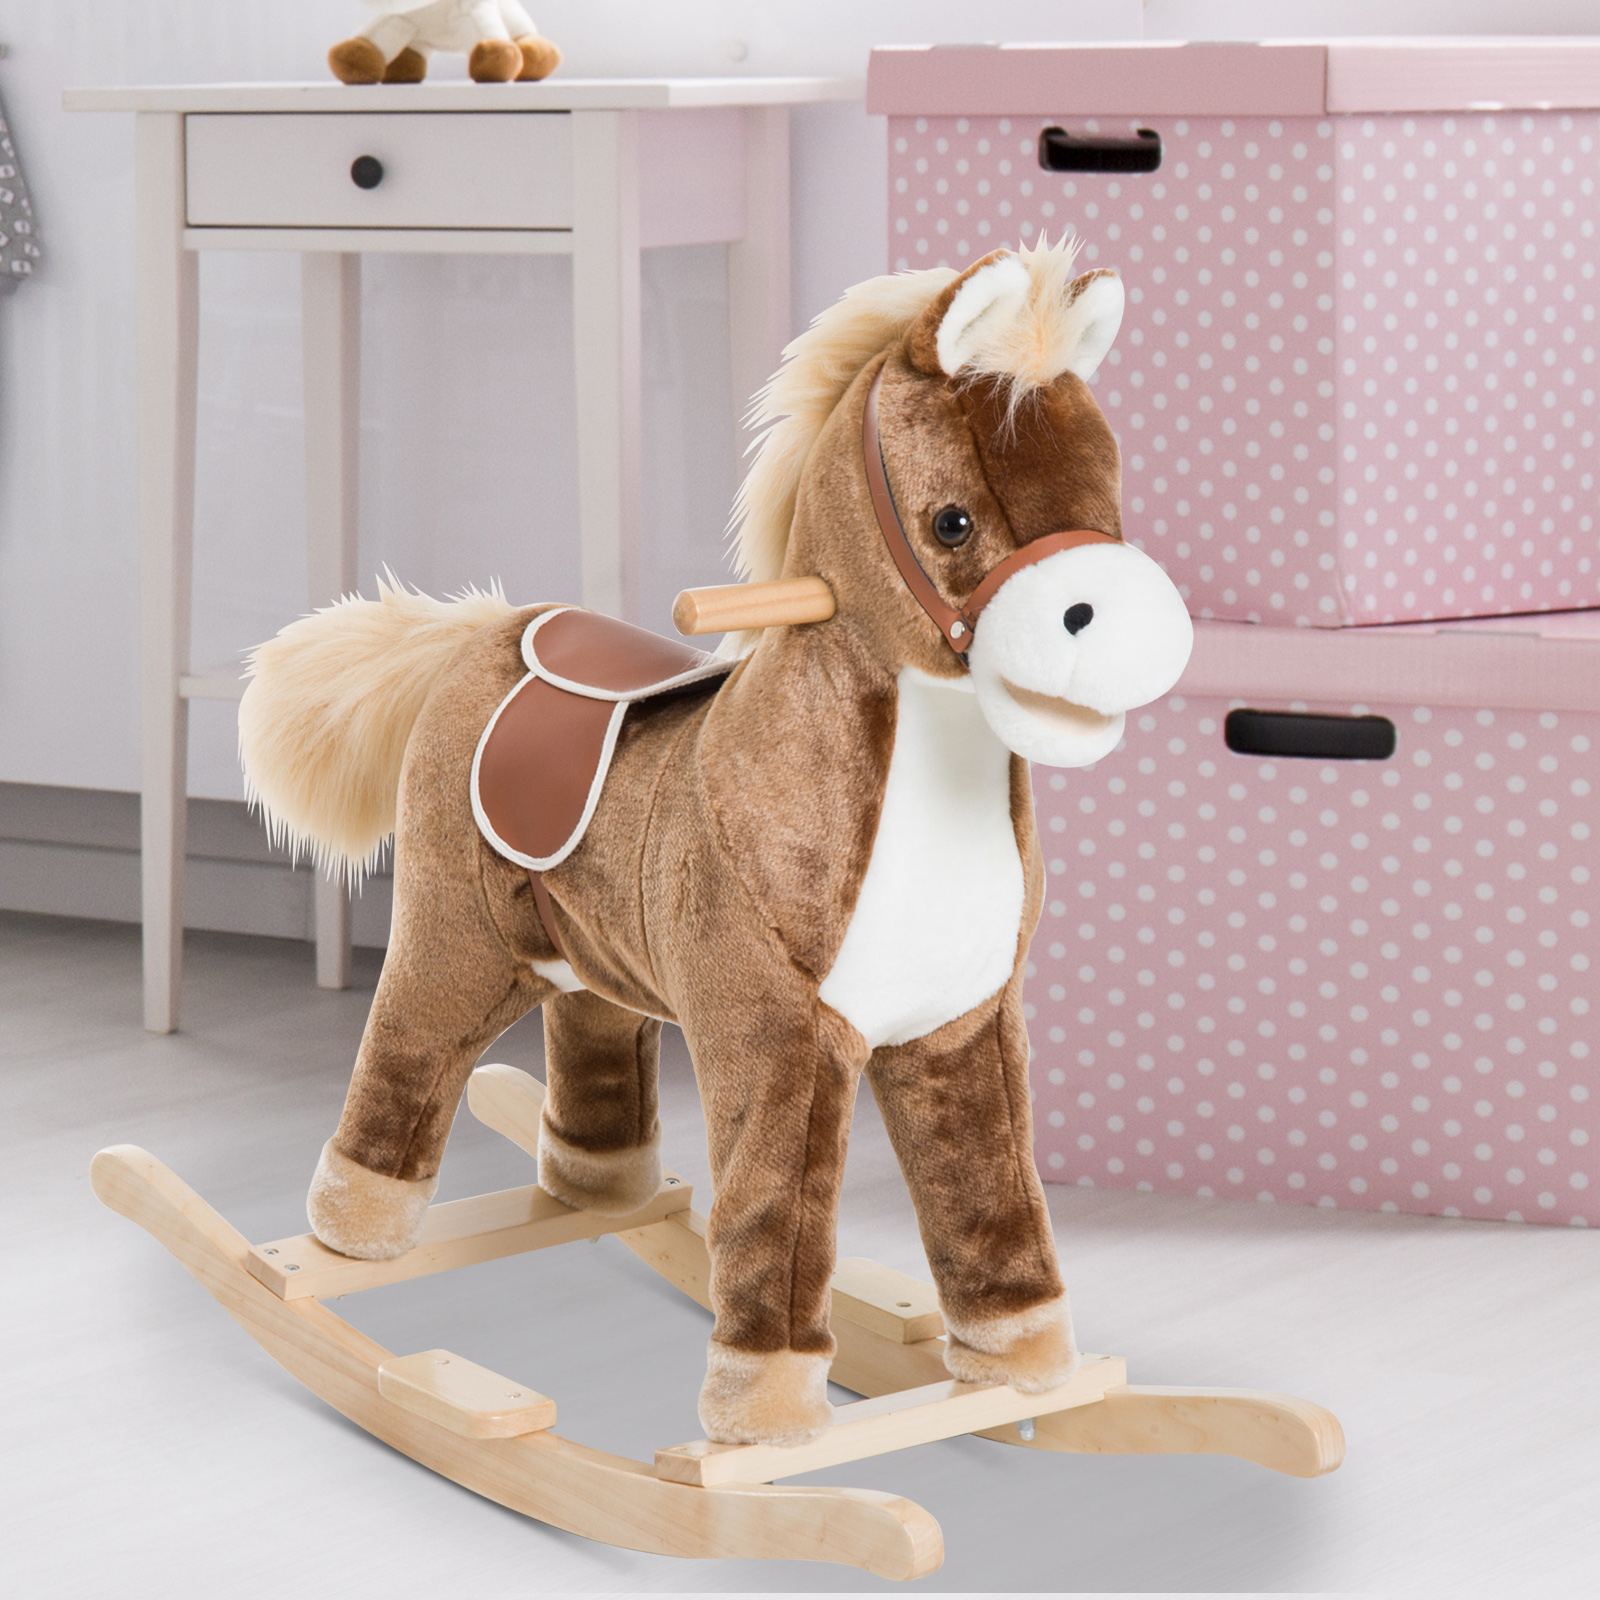 Baby Rocking Horse 6 Months Dinosaur Wooden Infant Rocker Playing Seat Green For Sale Ebay